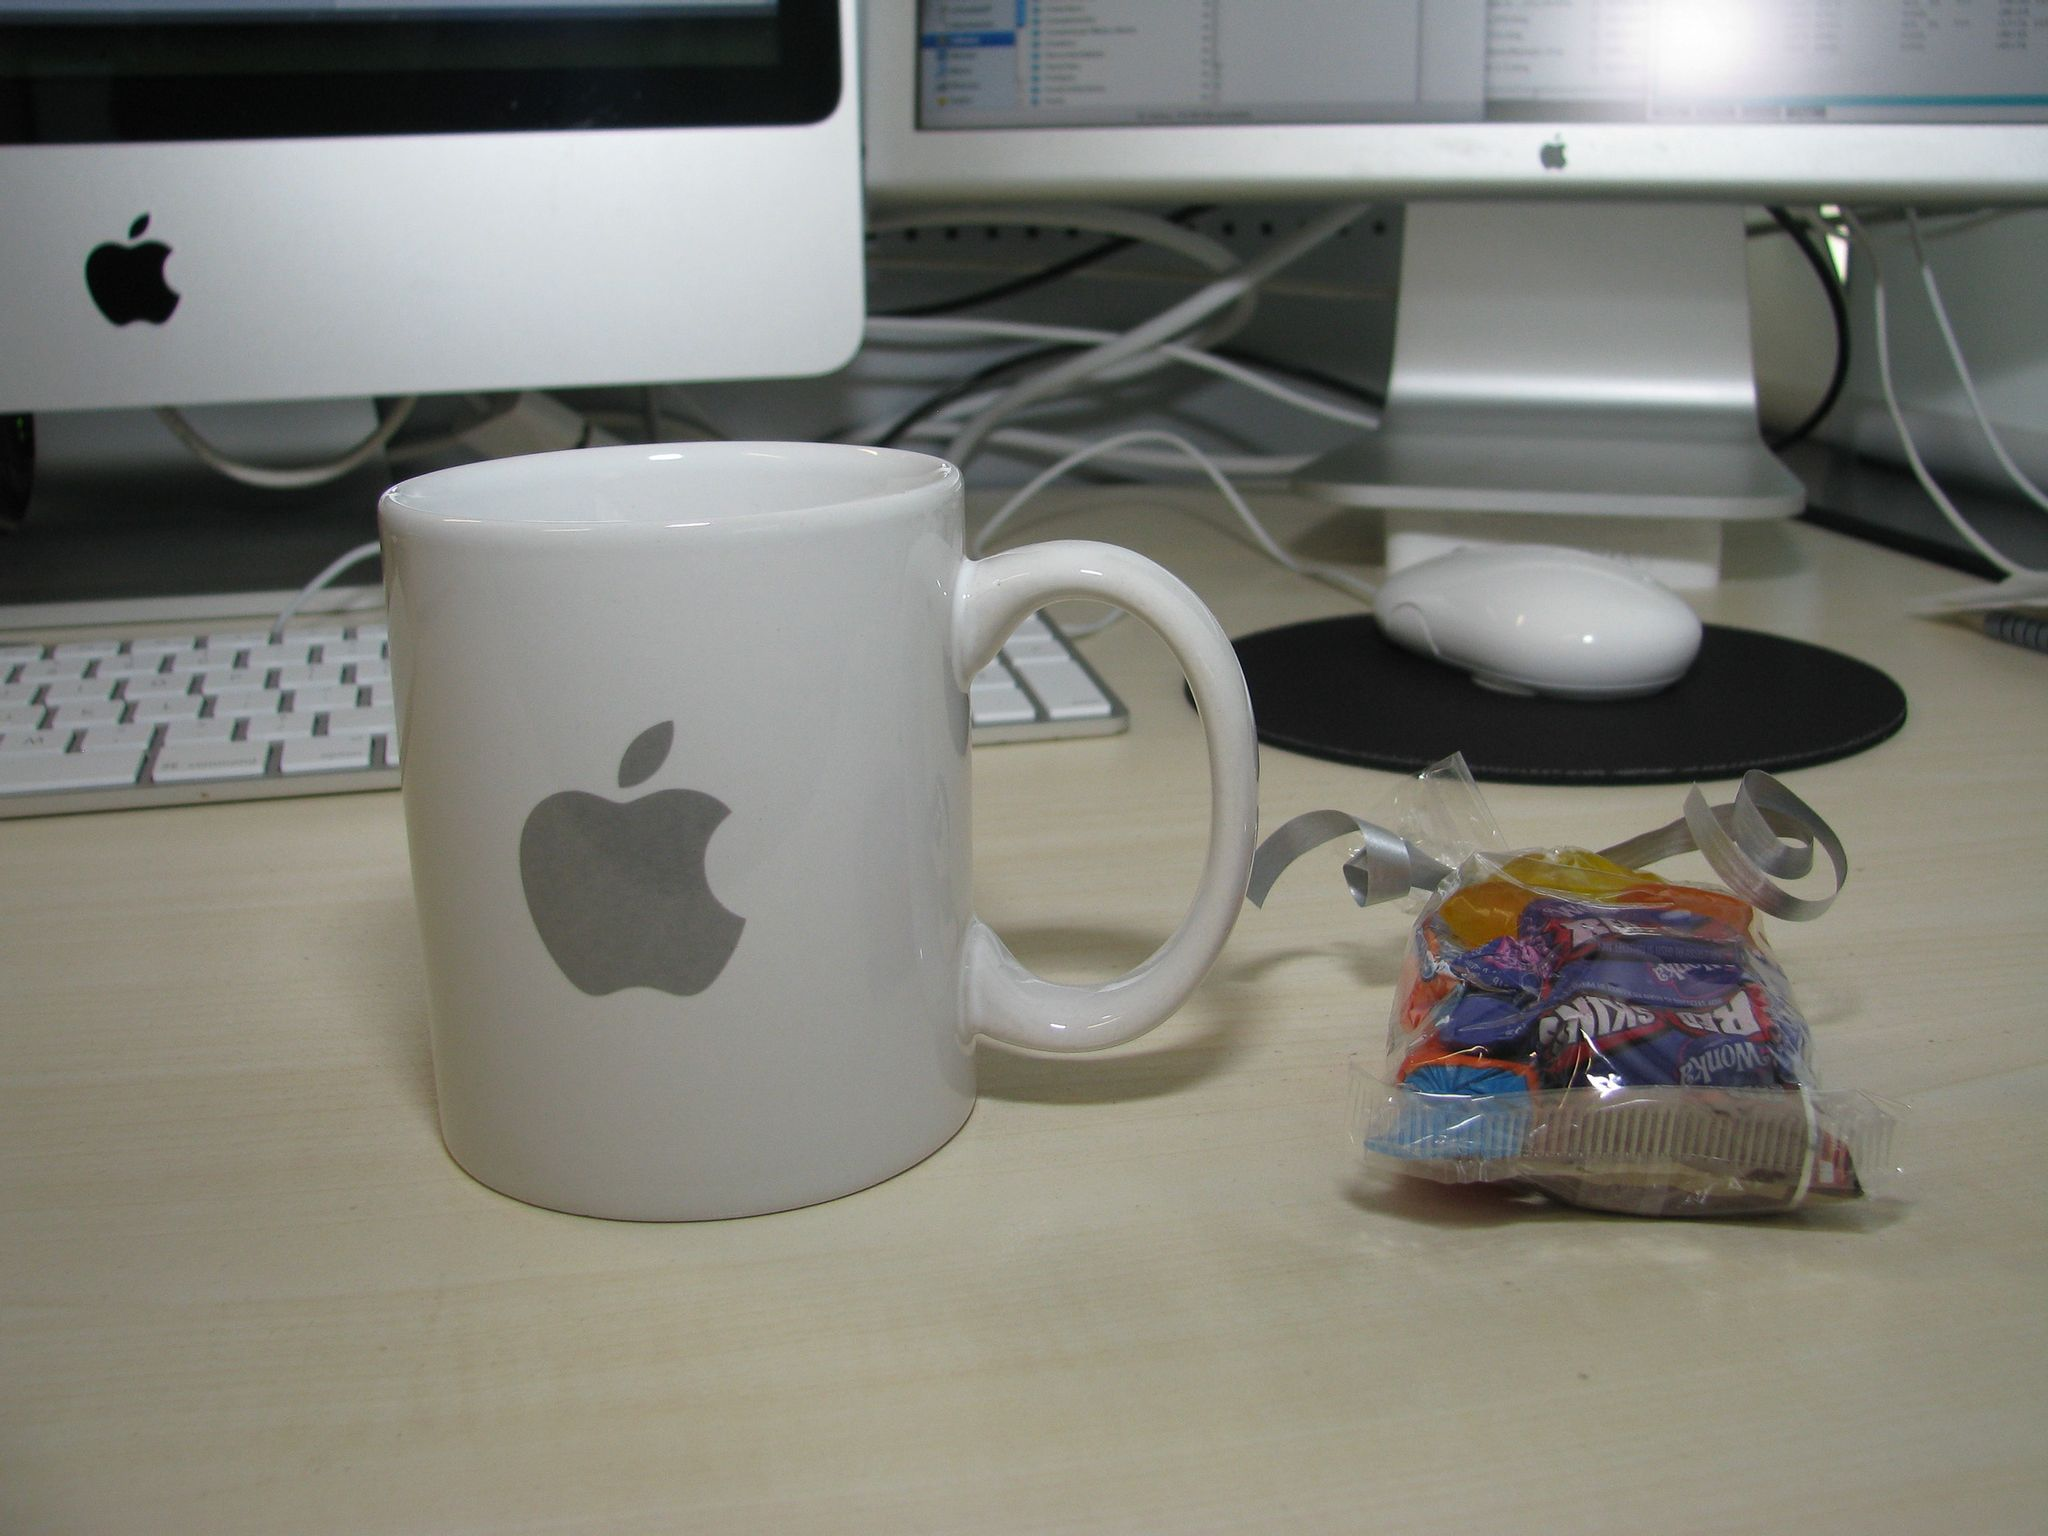 A photo of a white coffee mug with a grey Apple logo on it sitting next to a small bag of lollies.